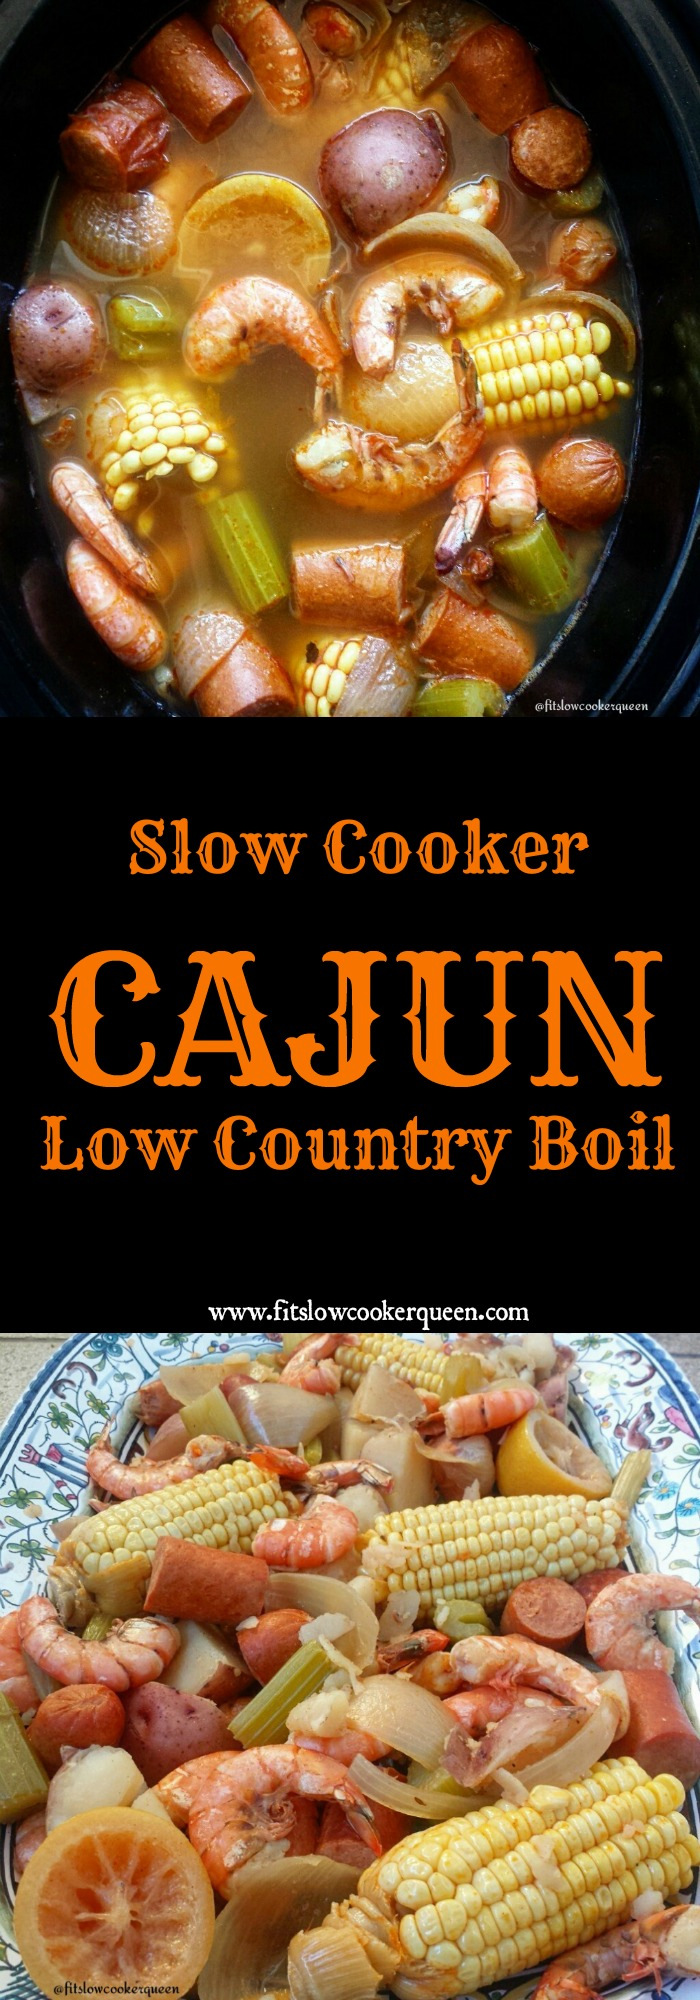 This easy cajun low country boil cooks a couple hours in a slow cooker. Simple yet packed full of flavor you can serve this year-round.